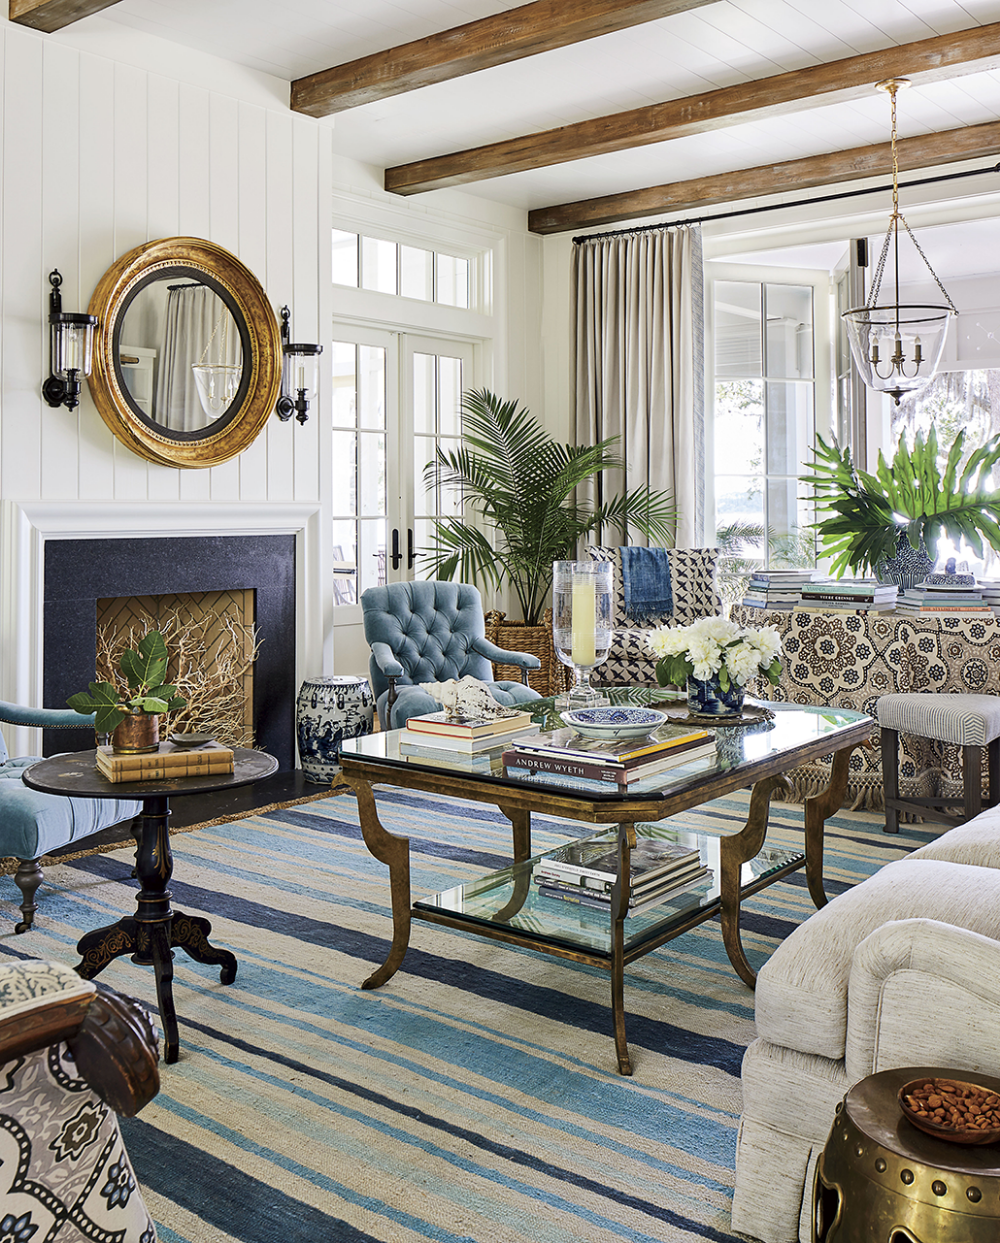 Southern Style Decorating Ideas From Southern Living: Pondview Medium Jar Lantern In 2020